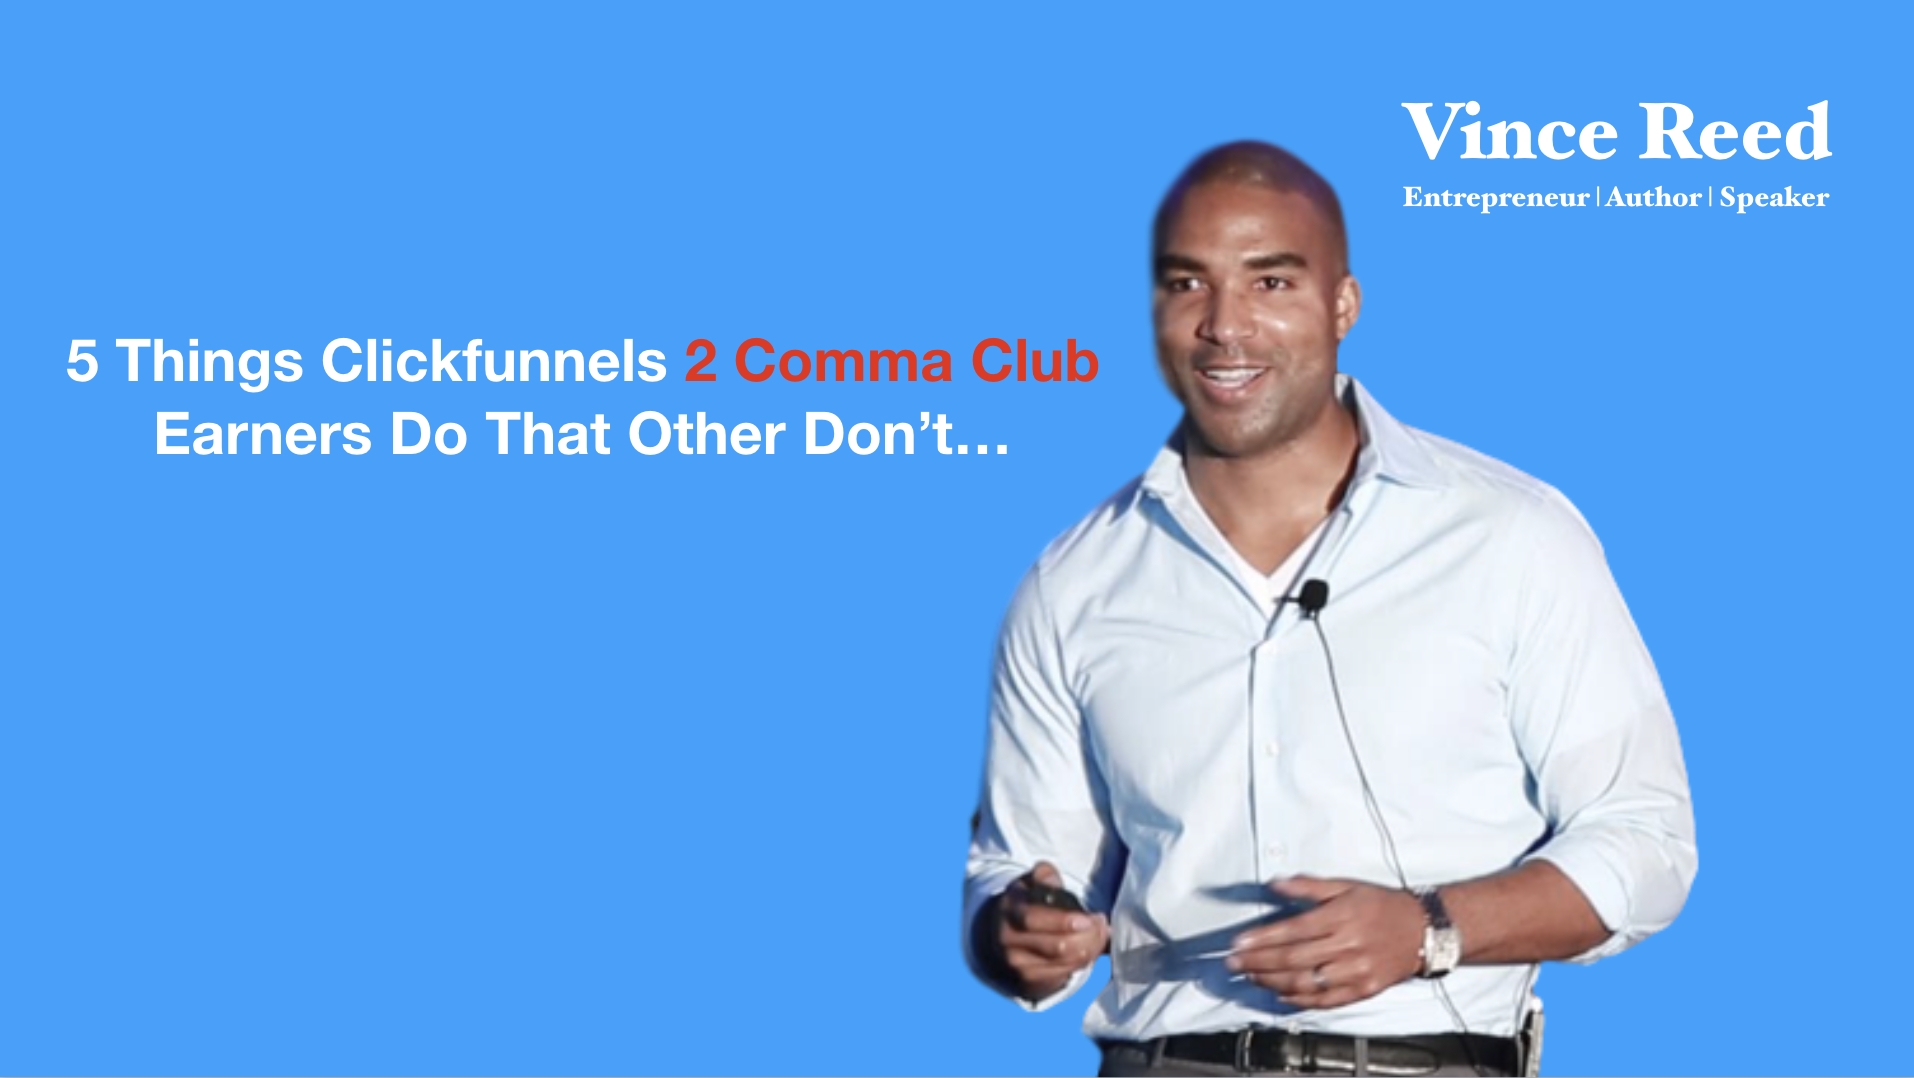 5 Things Clickfunnels 2 Comma Club Earners Do That Other Entrepreneurs Don't